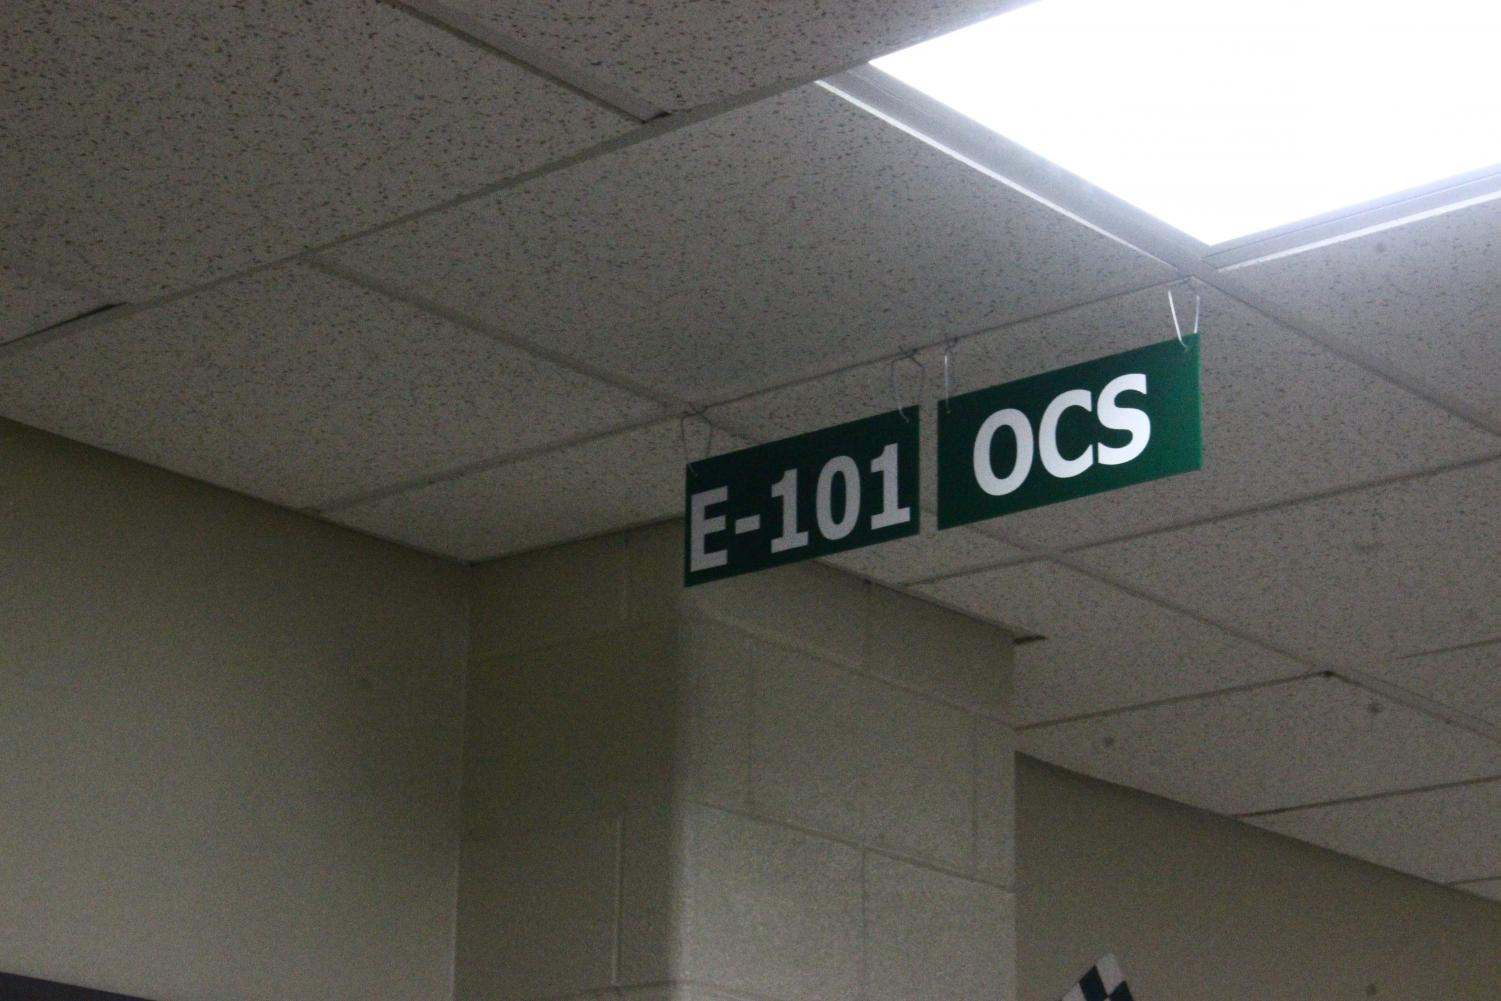 OCS was completely overhauled to better serve students to aid them academically and behaviorally.